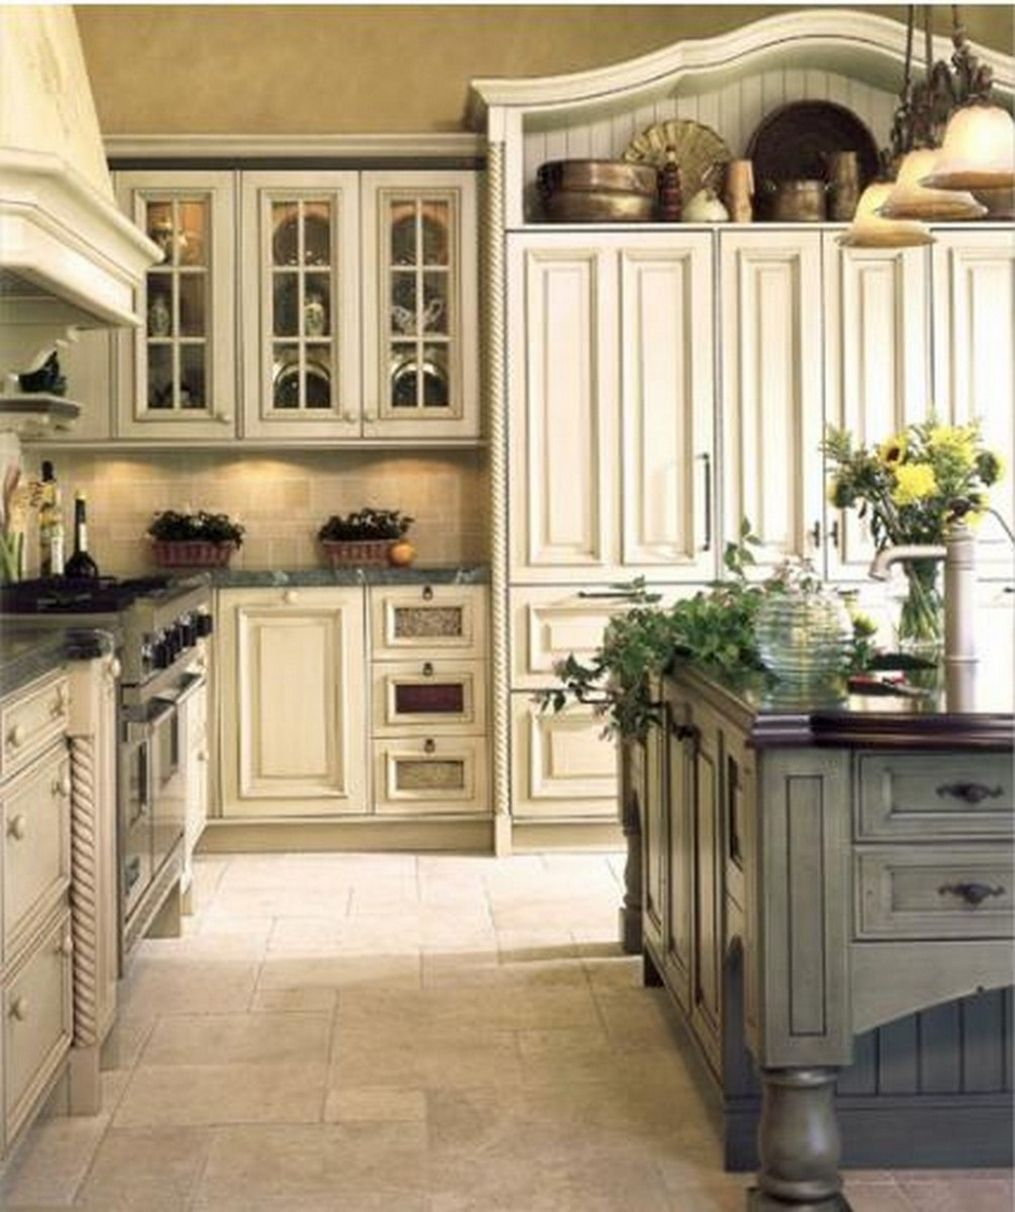 50 Best French Country Kitchens Design Ideas & Remodel Pict ... Vintage French Kitchen Design Ideas on vintage small kitchen ideas, vintage farmhouse kitchen ideas, vintage french kitchen island, vintage family ideas, vintage french decorating, vintage french kitchen furniture, vintage red kitchen ideas, vintage french windows, vintage french design, vintage french living rooms, vintage french bathroom, vintage french kitchen tools, vintage french kitchen graphics, vintage french kitchen cabinets, vintage rustic ideas, vintage french country kitchen, vintage frames ideas, vintage flowers ideas, vintage french dining room, vintage studio apartment ideas,